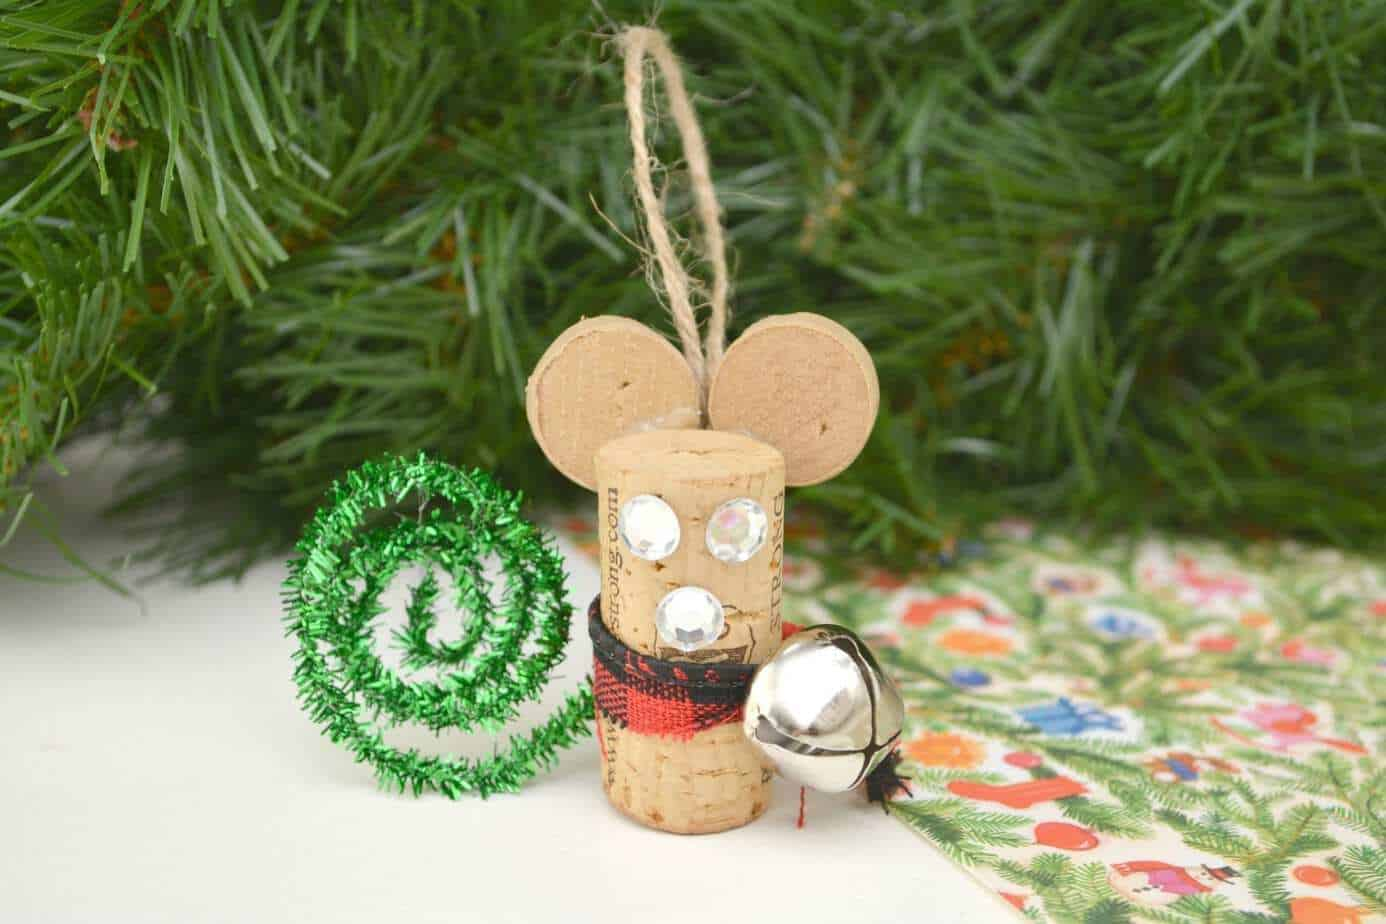 Make This Cute Wine Cork Mouse Ornament